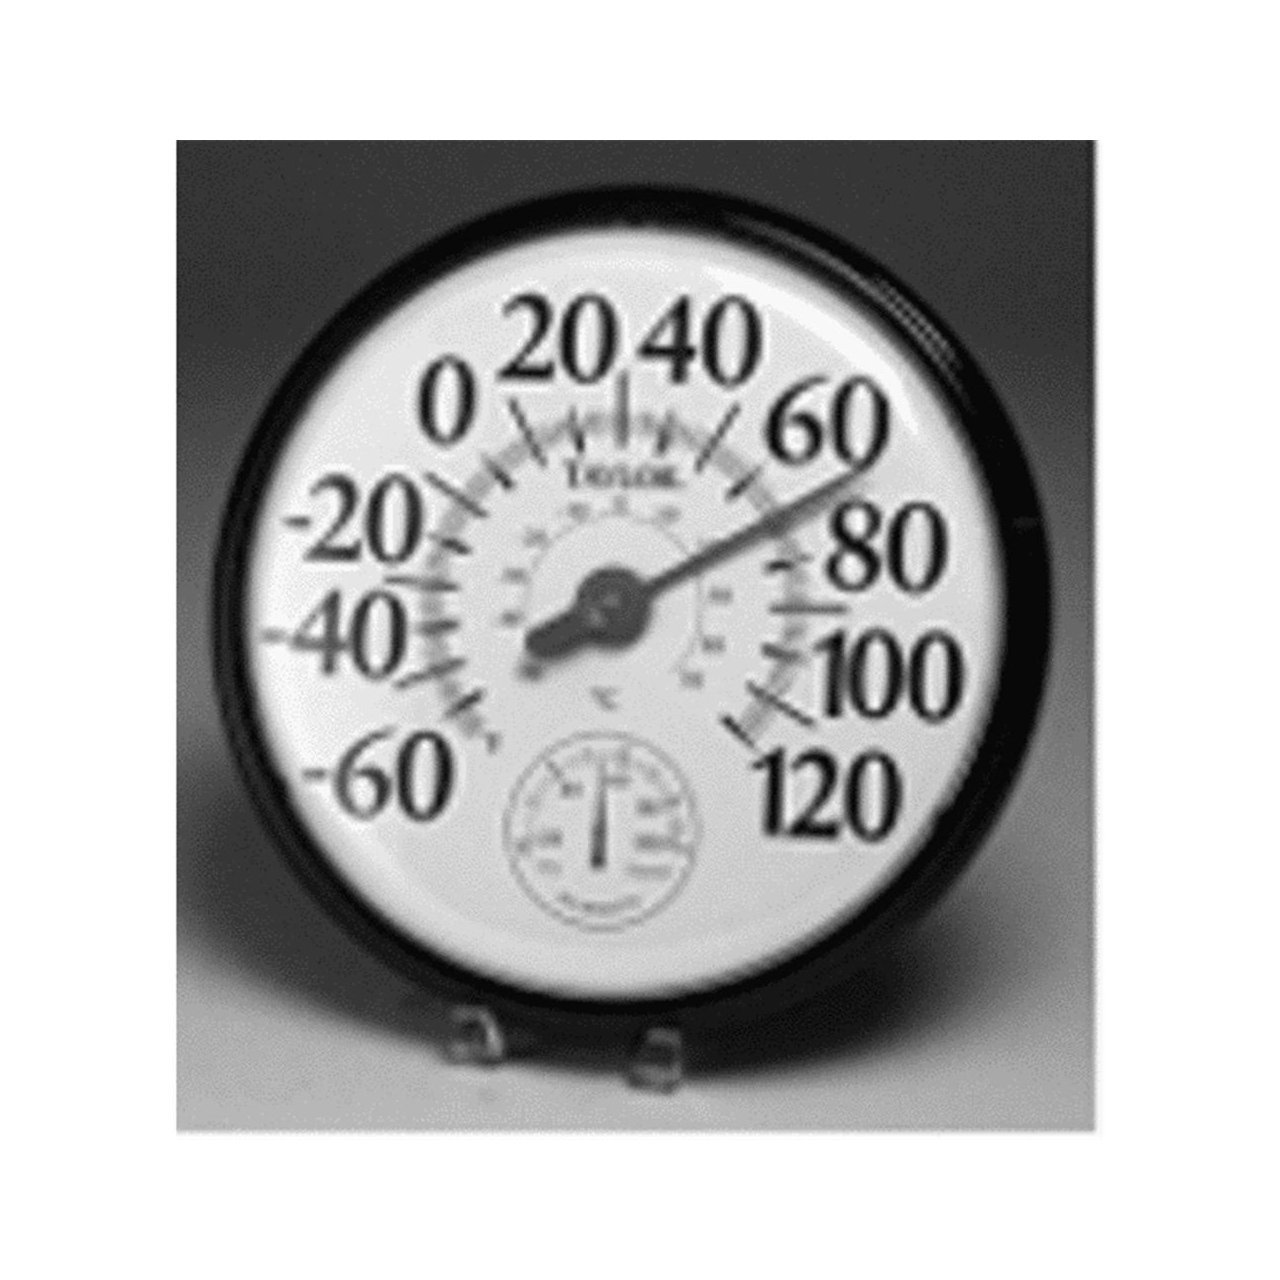 6712N Image Gallery Outdoor Wall Thermometer and Humidity Guide, thermometer By Taylor Precision Ship from US